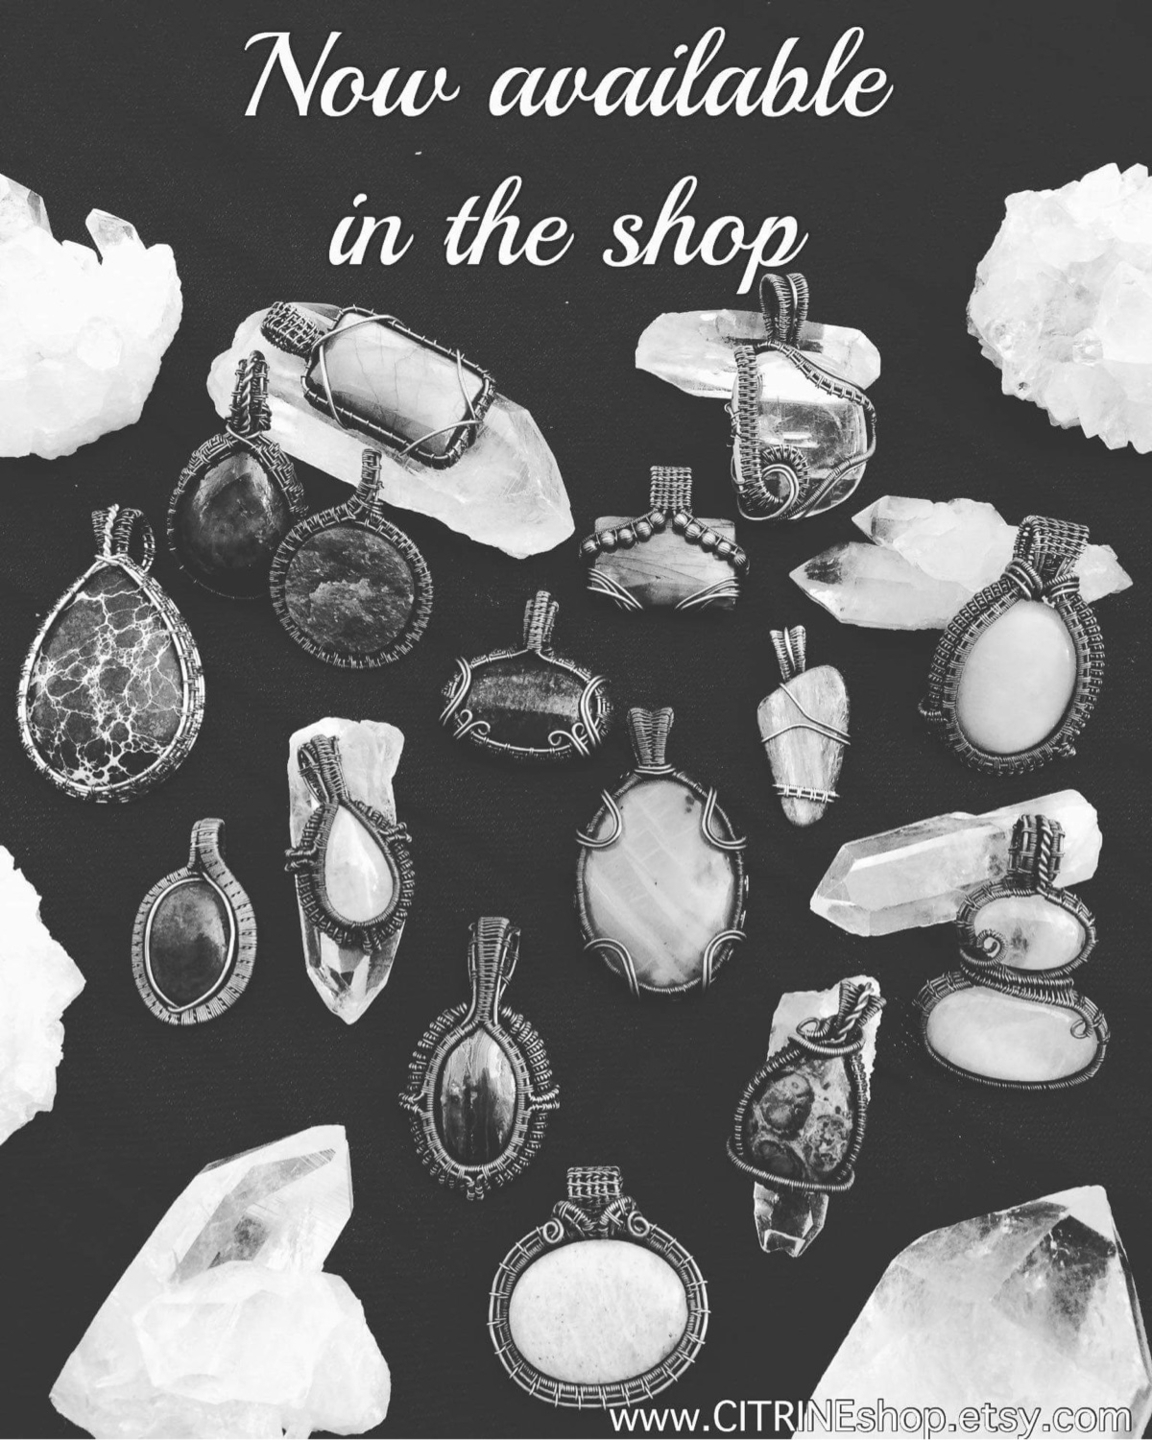 @citrineshop Cover Image